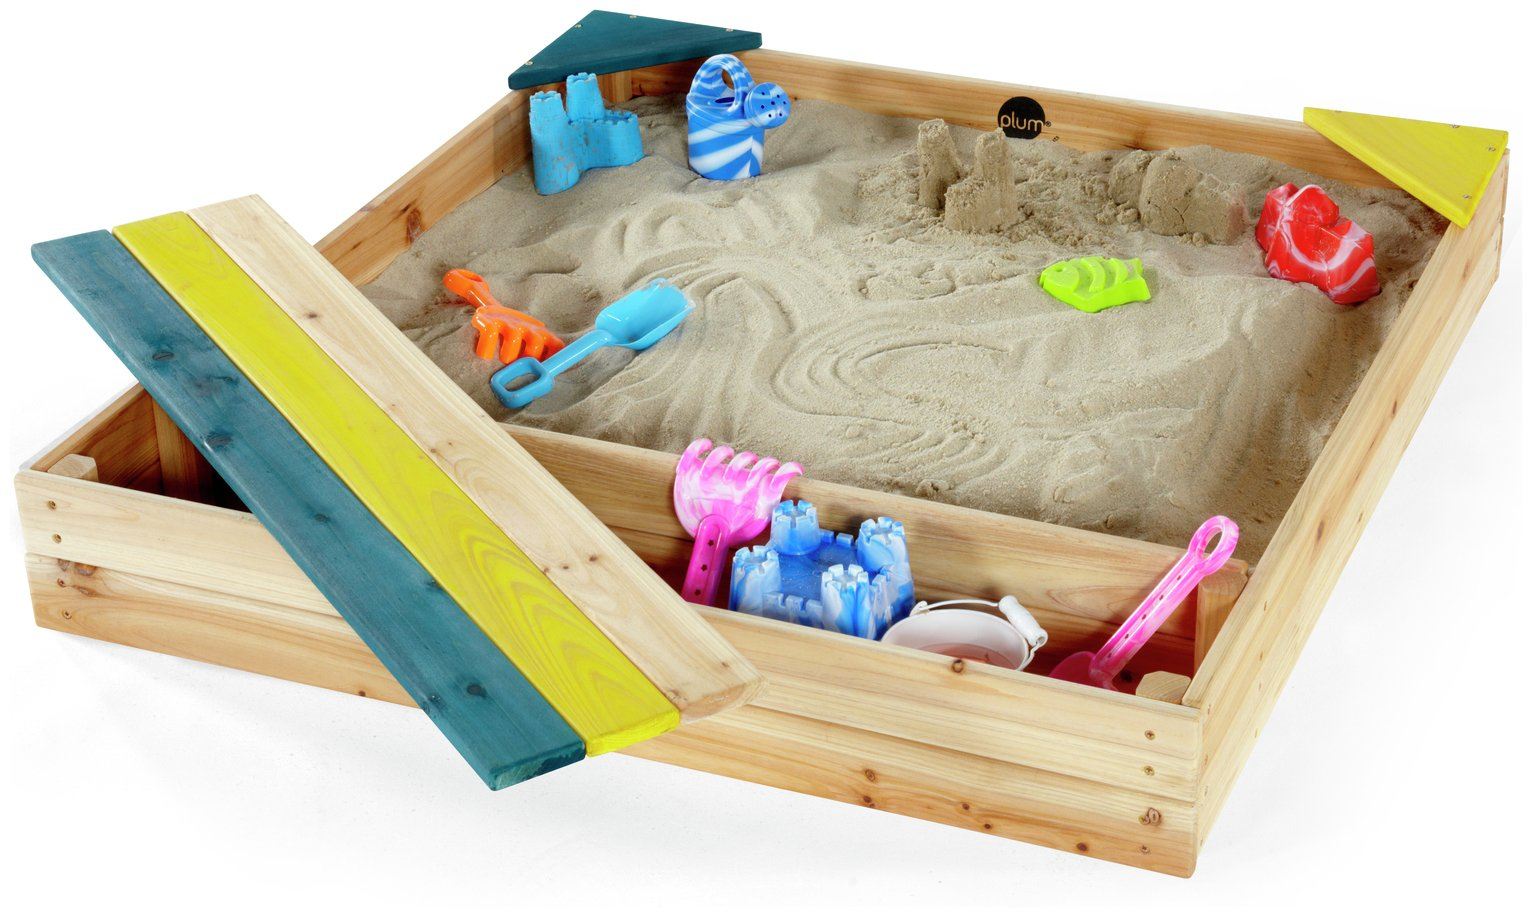 Plum Store-It Outdoor Play Wooden Sand Pit.